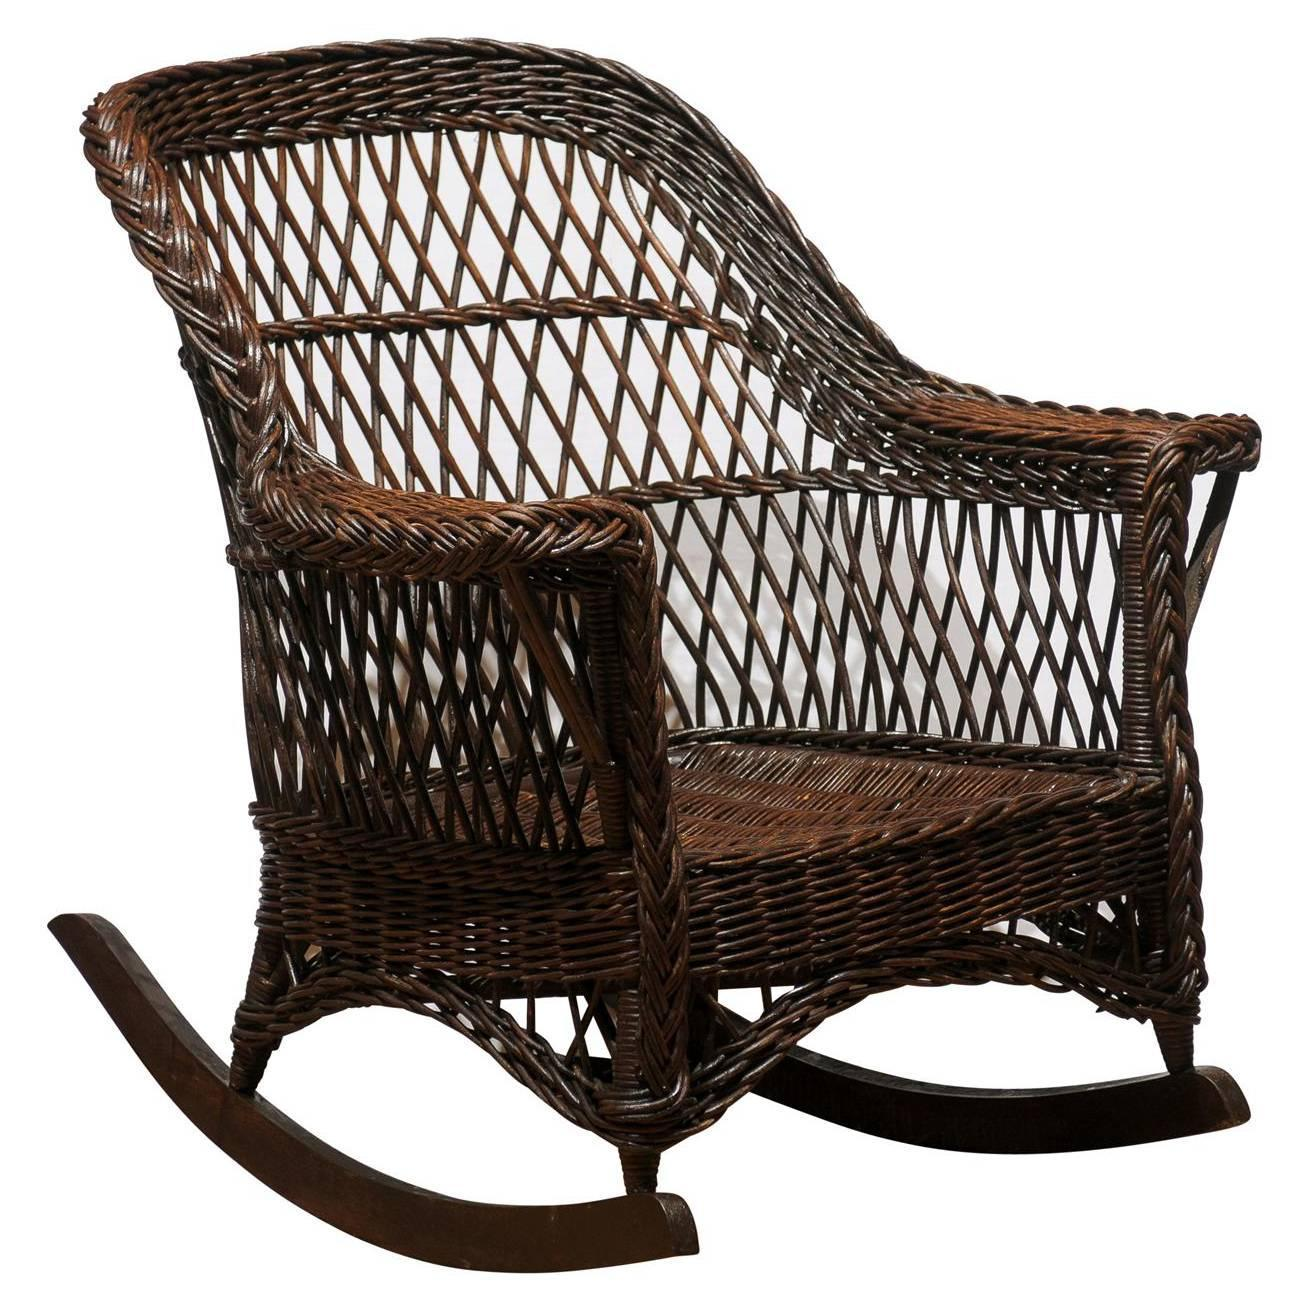 heywood wakefield dogbone chairs anti gravity chair leather pair of wicker rockers at 1stdibs